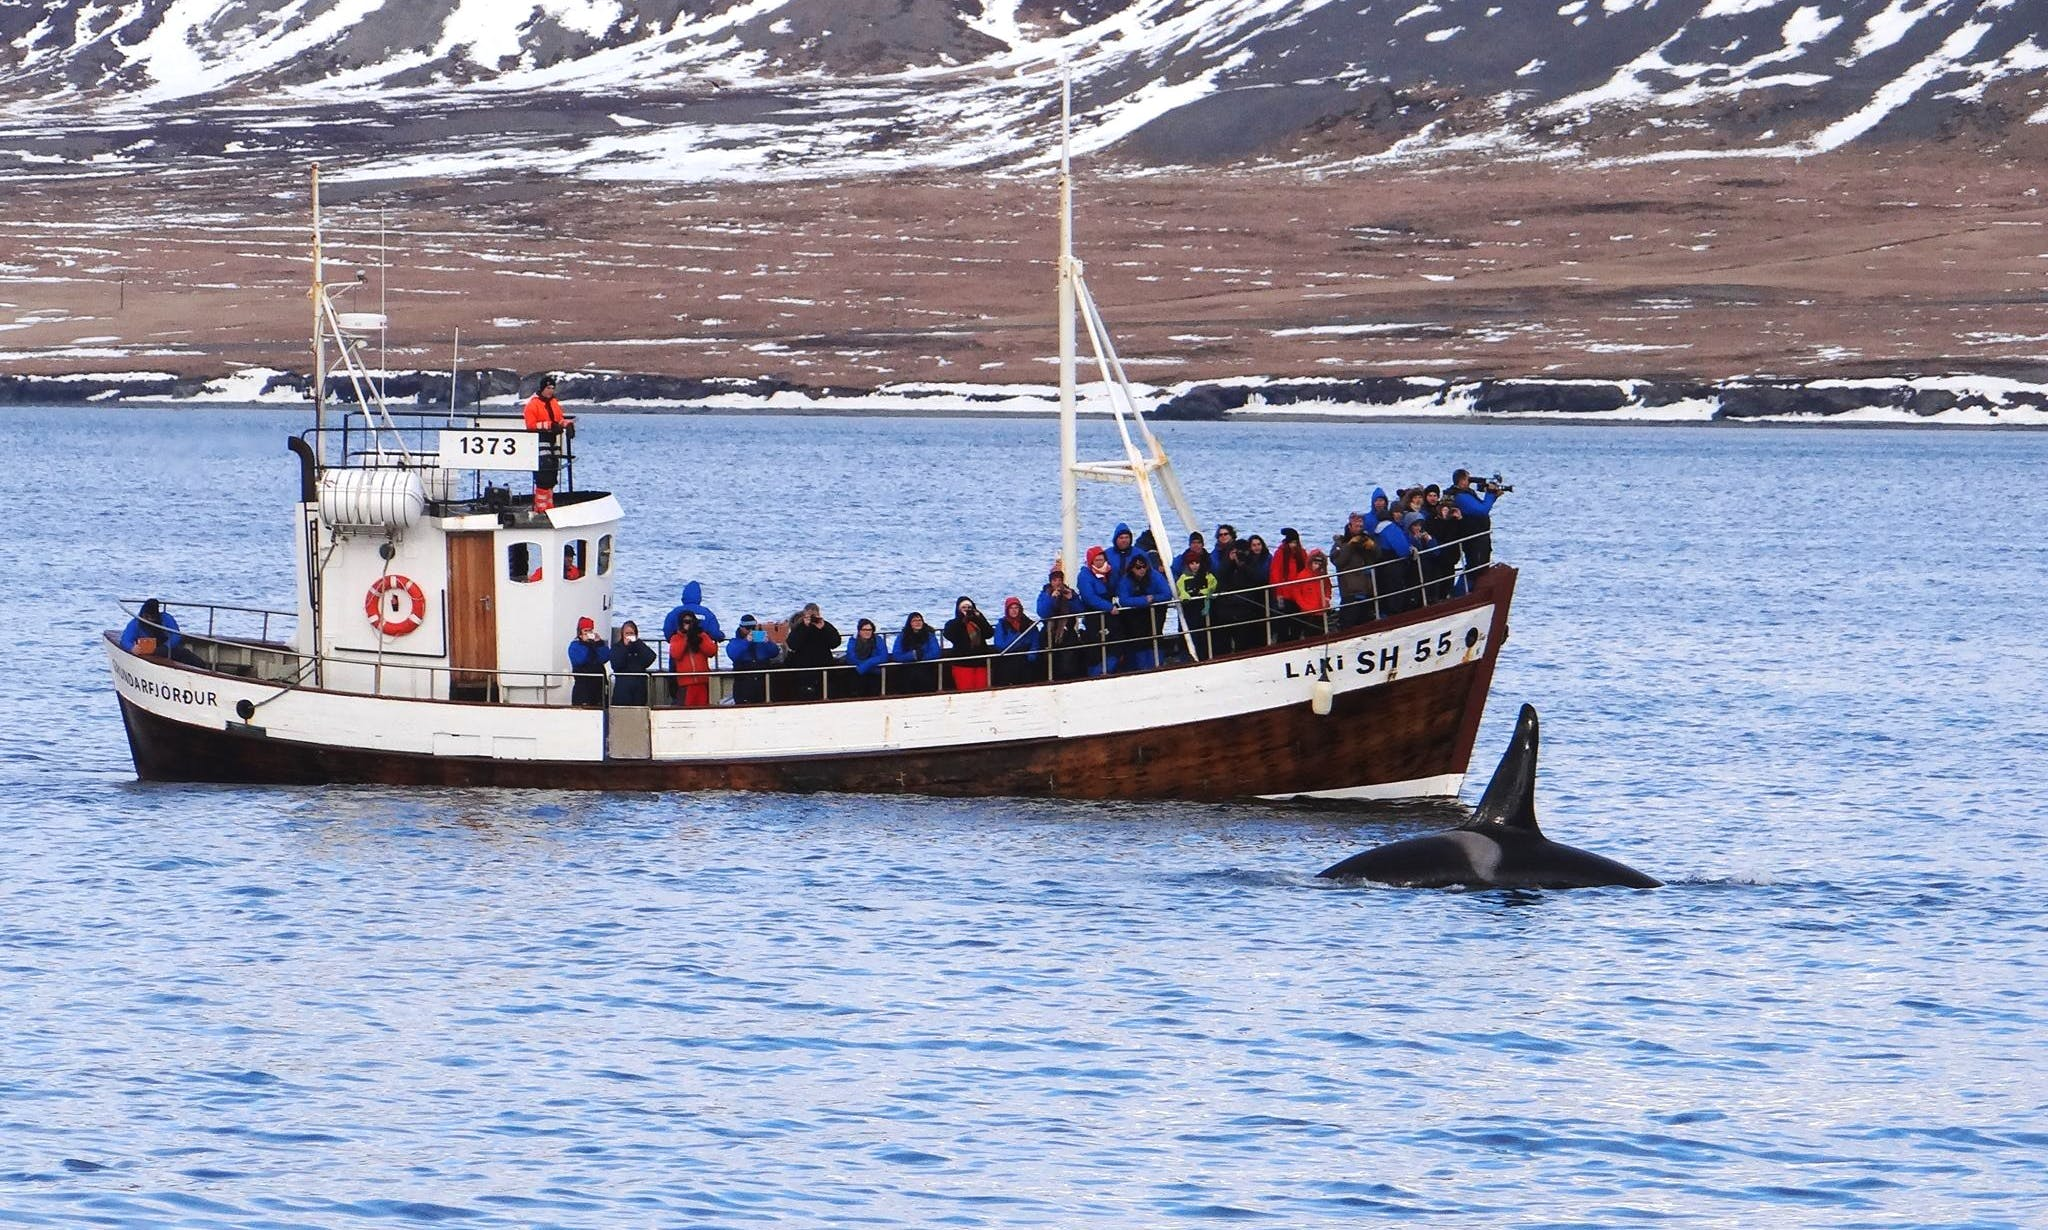 Enjoy Whale Watching in Grundarfjörður, Iceland on Láki SH55 Trawler